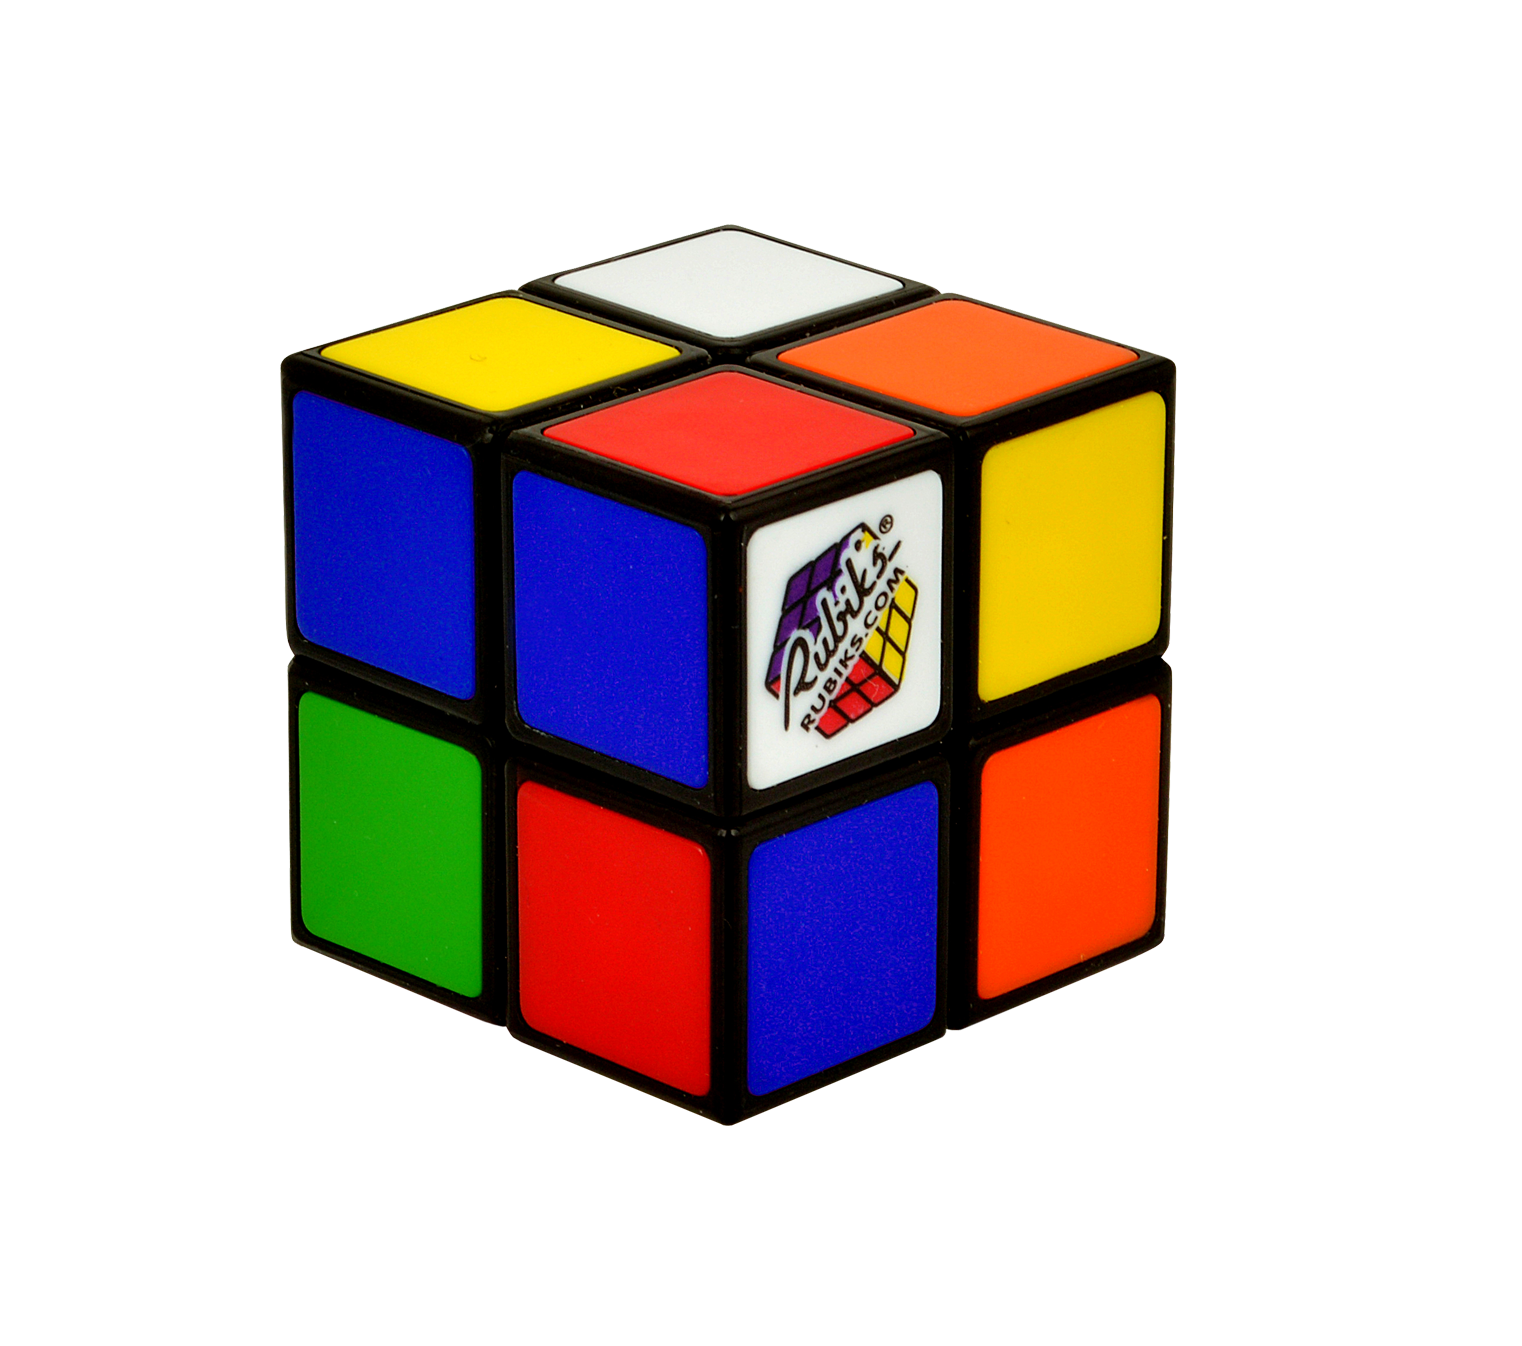 Rubik 39 s 2x2 goliath spain goliath spain for Rubik espana